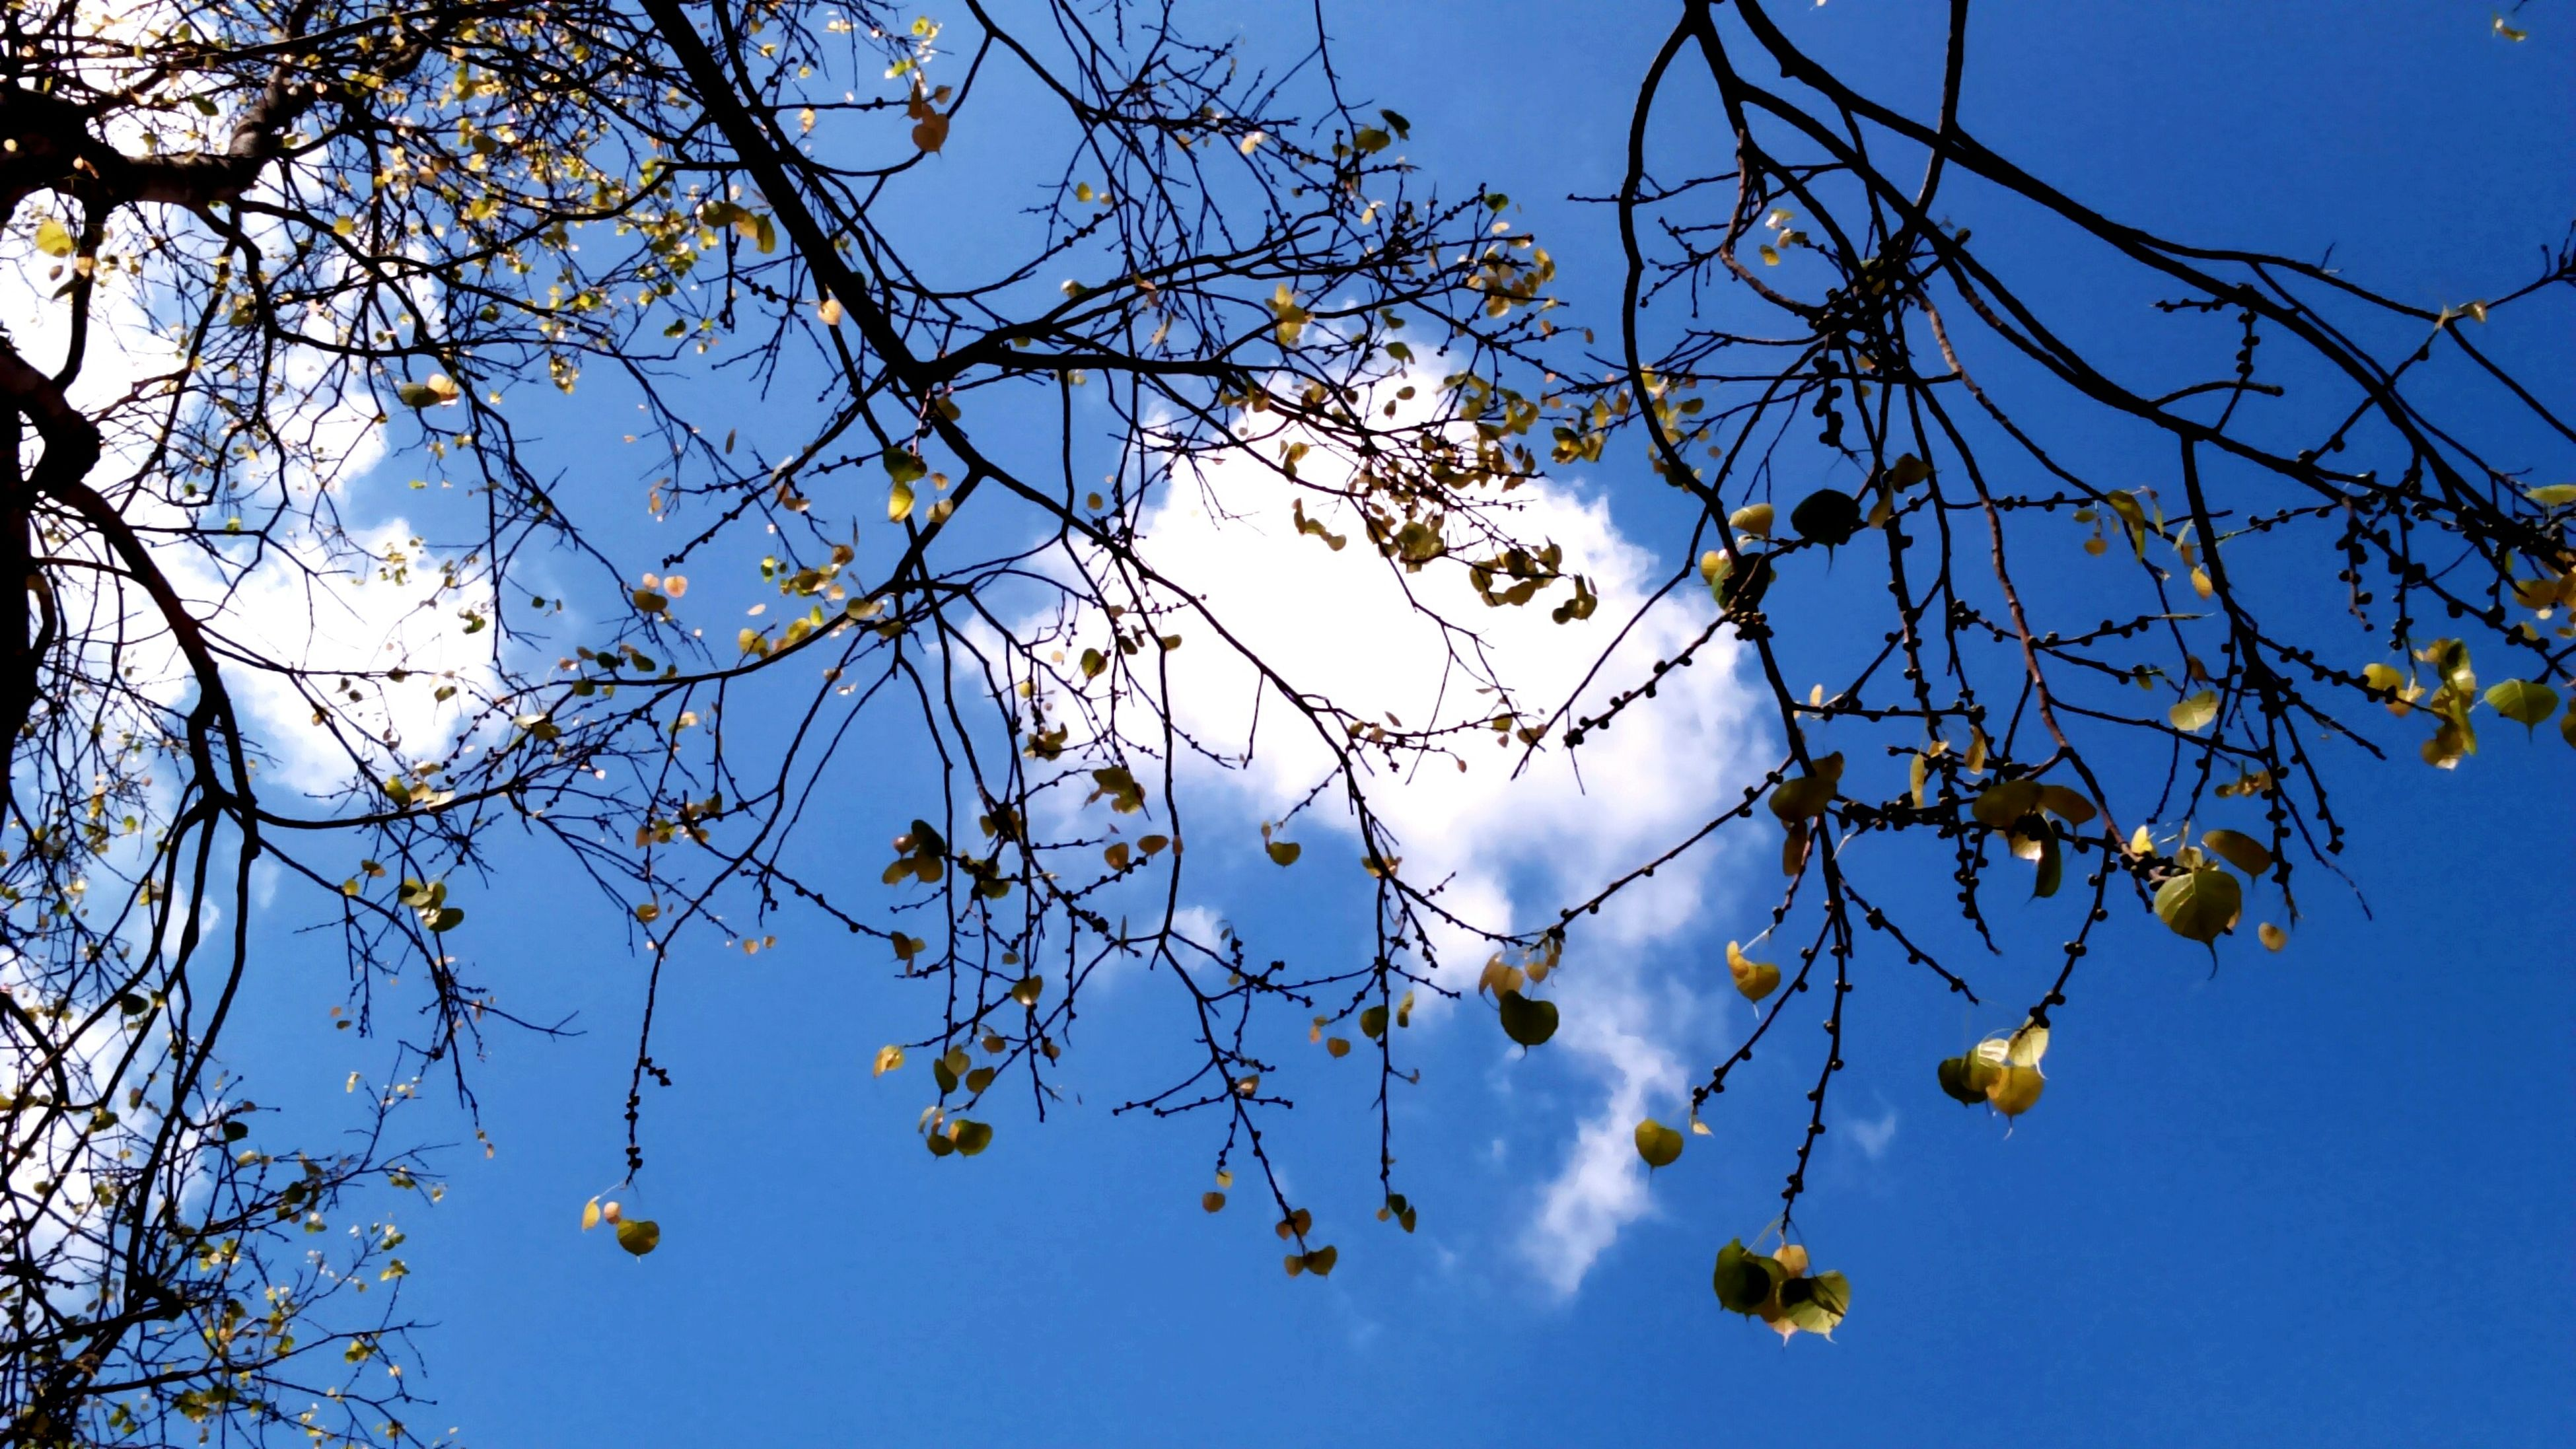 tree, low angle view, nature, branch, sky, no people, outdoors, growth, beauty in nature, day, tranquility, catkin